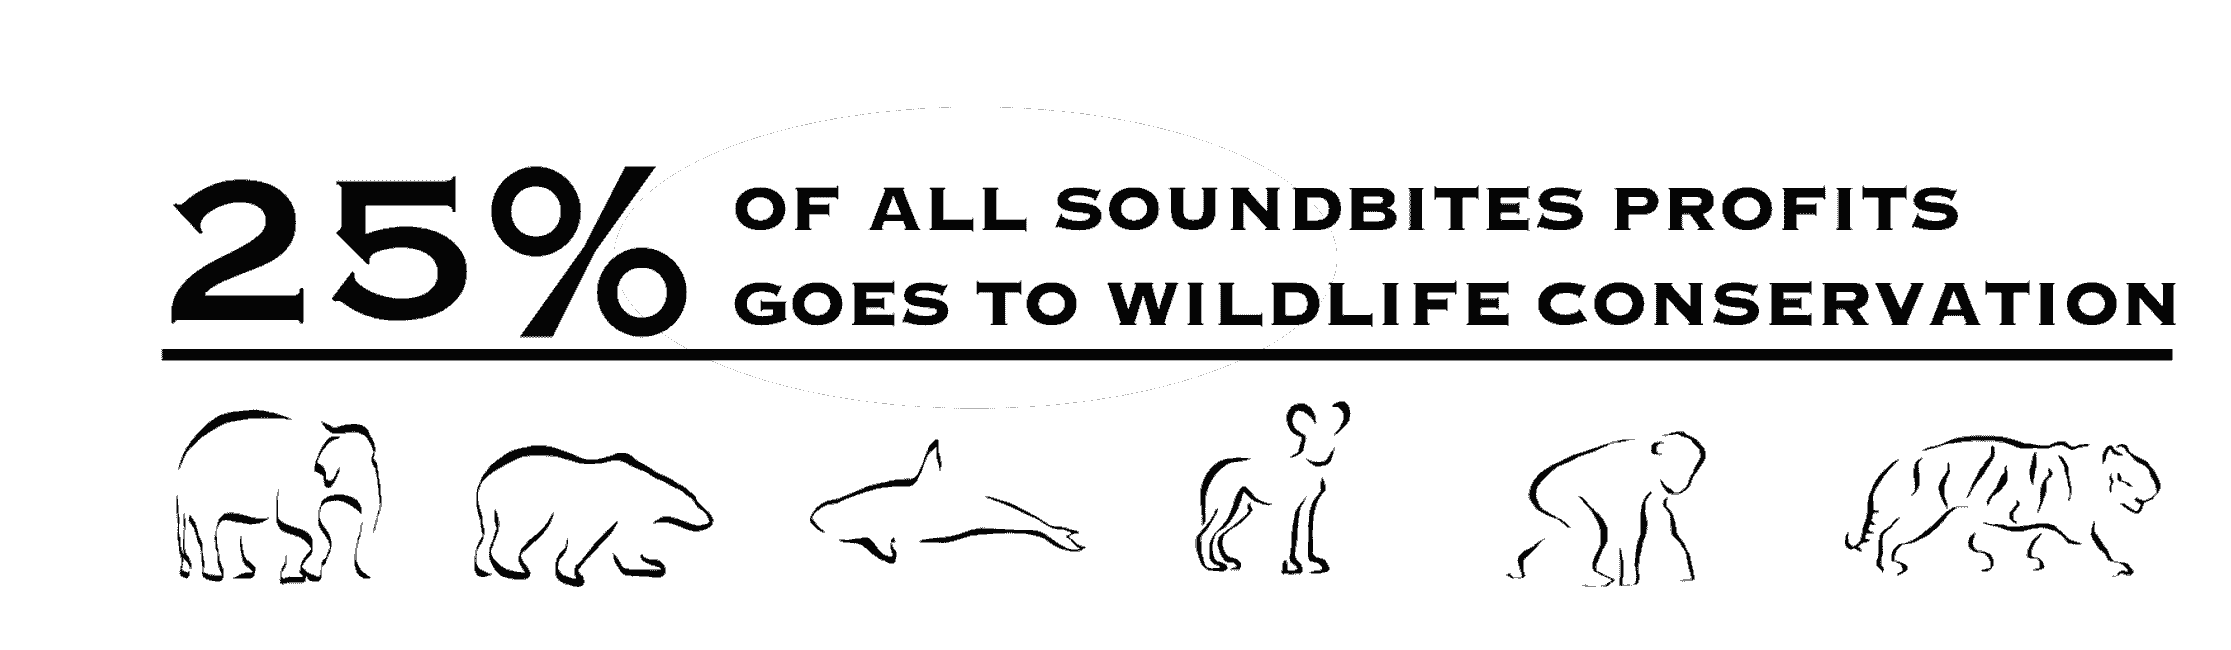 25% of SoundBites profits go directly to supporting wildlife conservation.